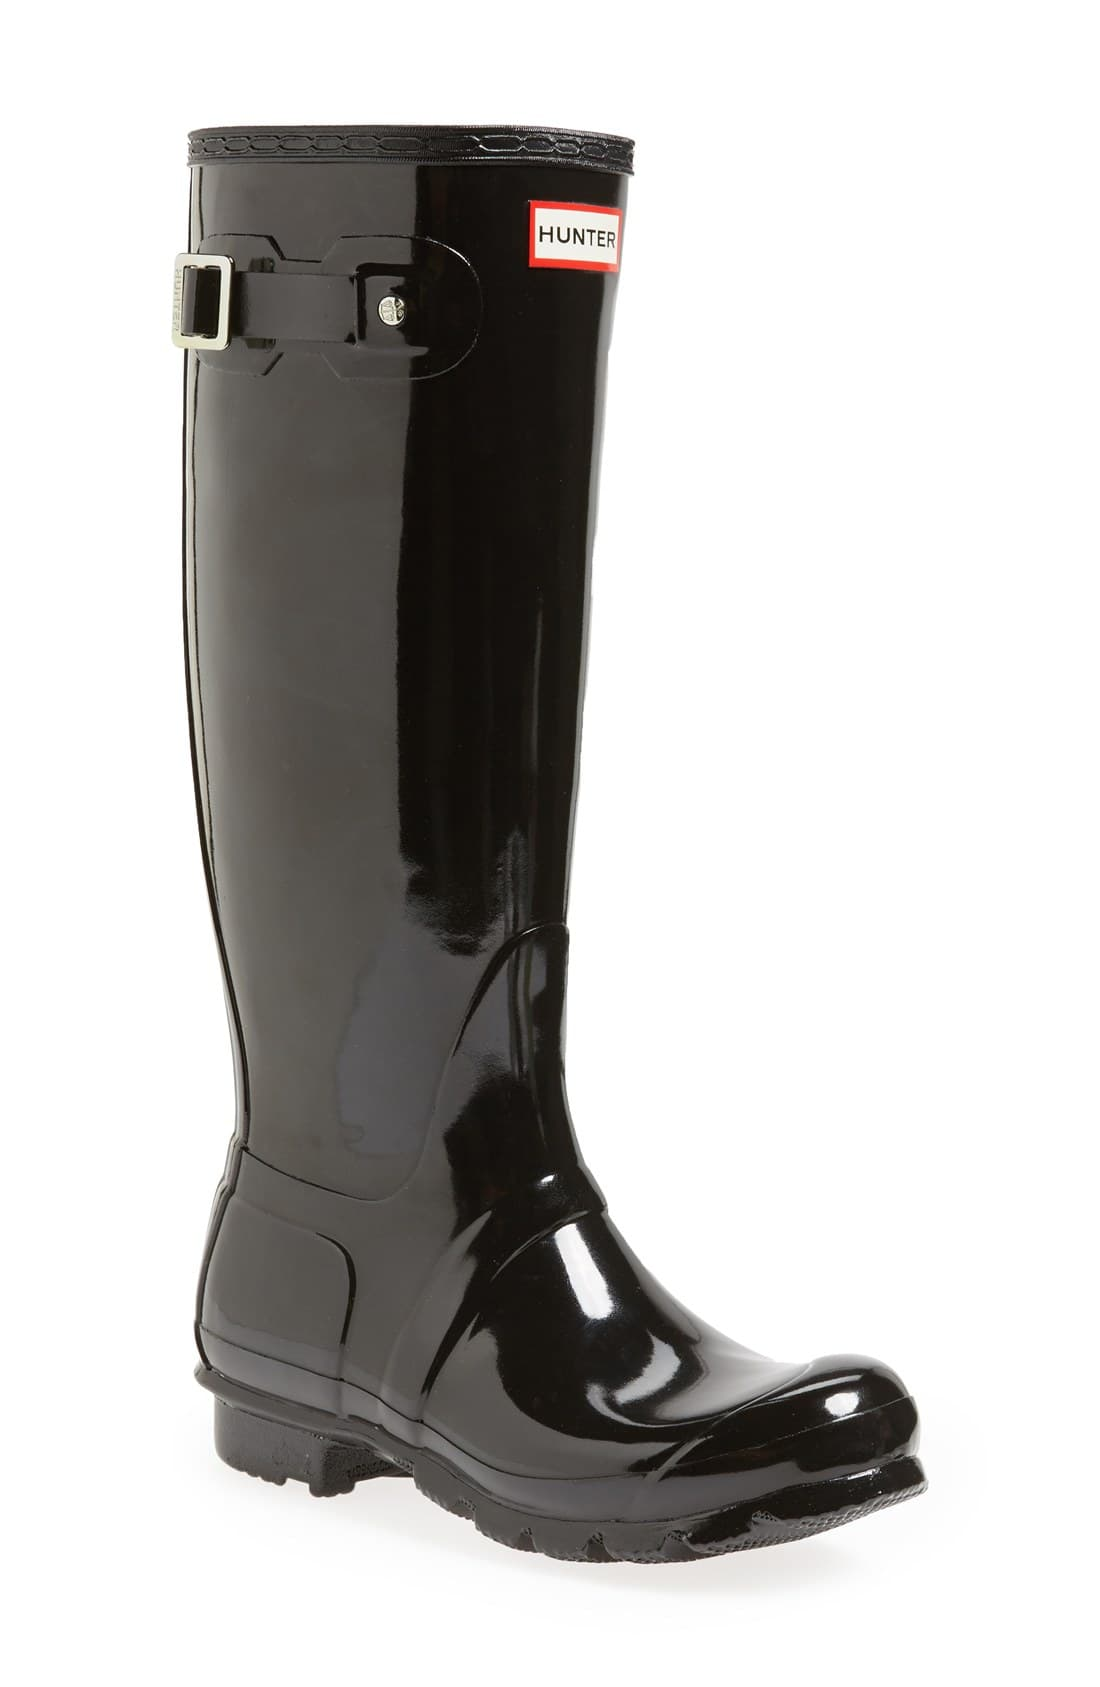 a40605b568 Hunter High Gloss Waterproof Boot in 2019 | Products | Hunter boots ...